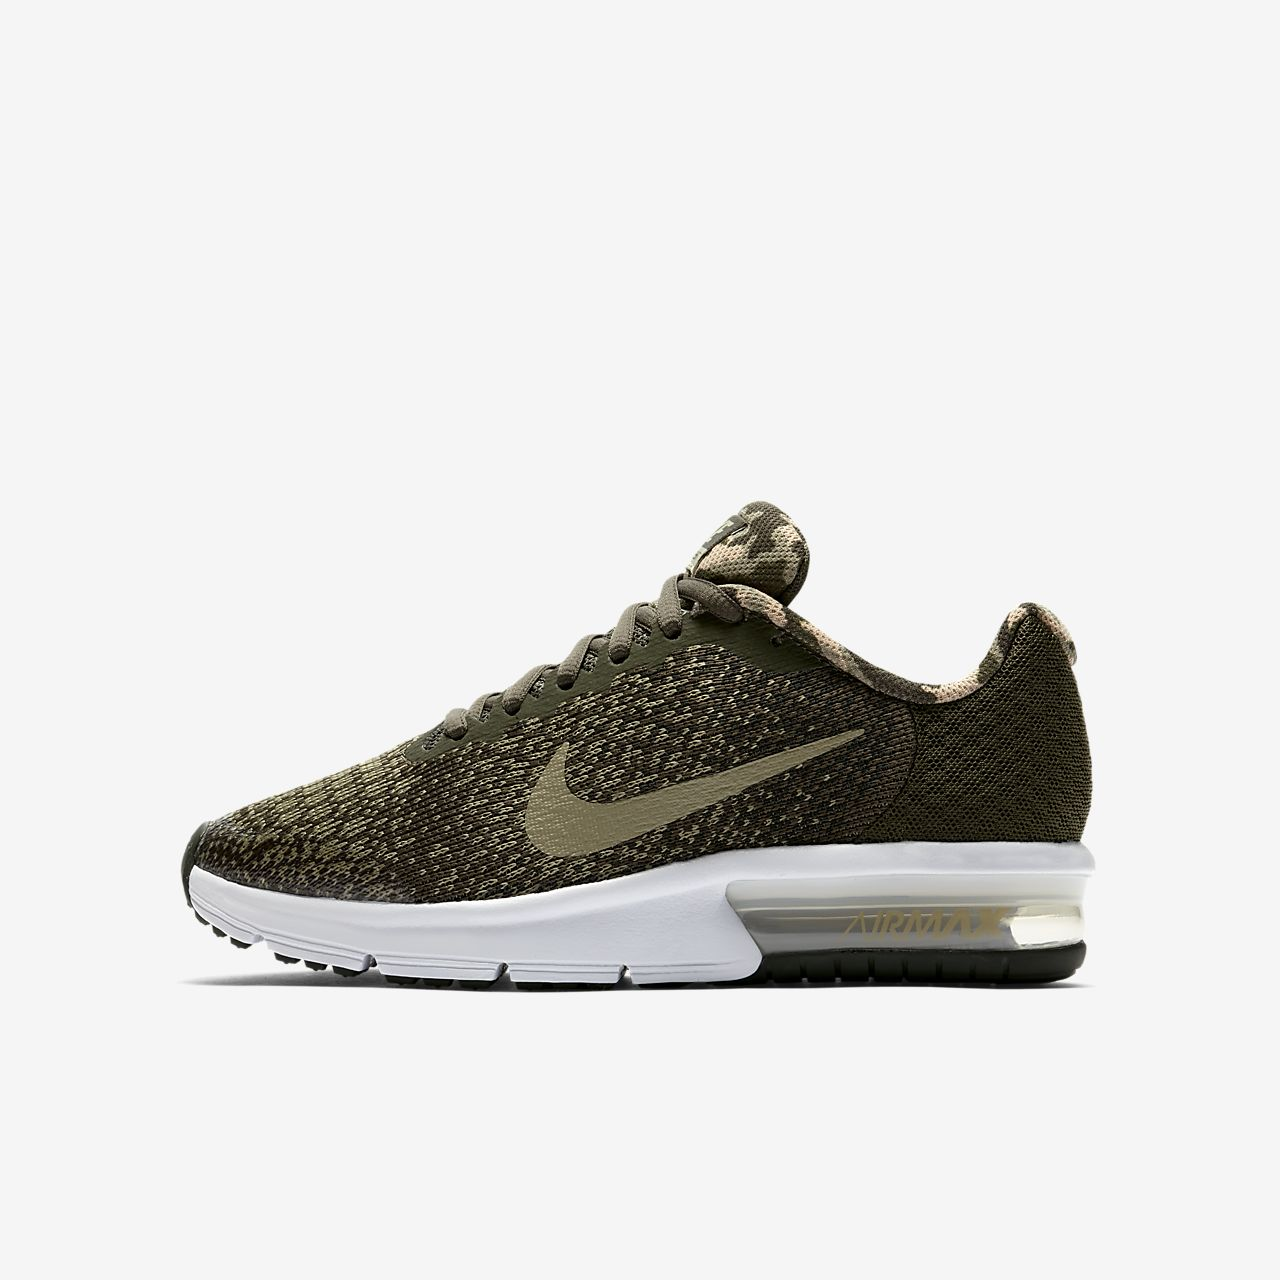 lower price with 6e9e3 e40bd Nike Air Max Sequent 2